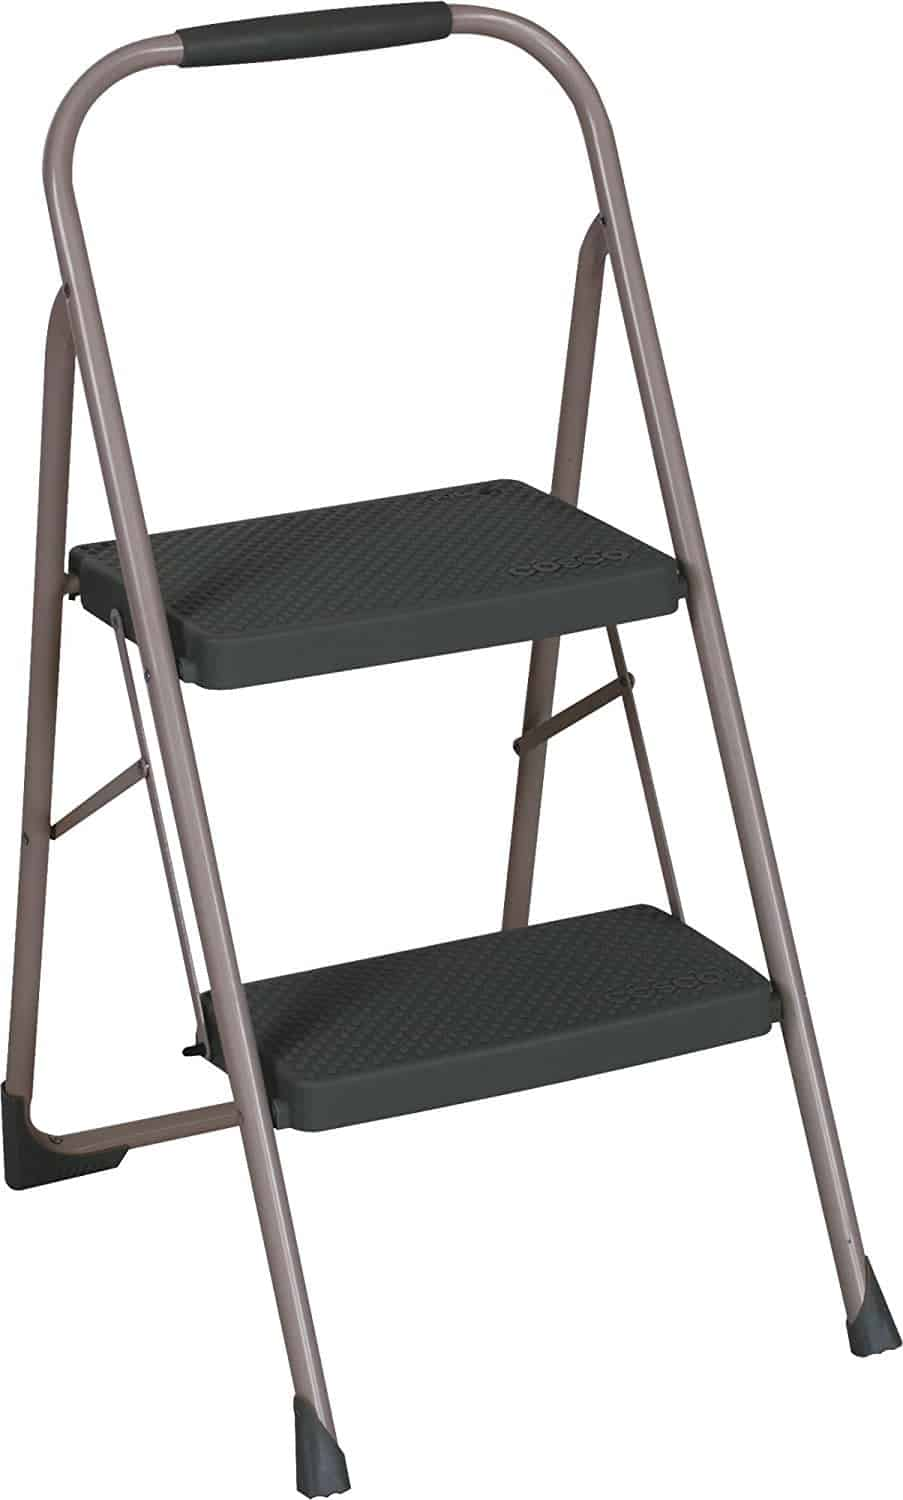 Two step big step folding step stool with rubber hand grip in gray finish.